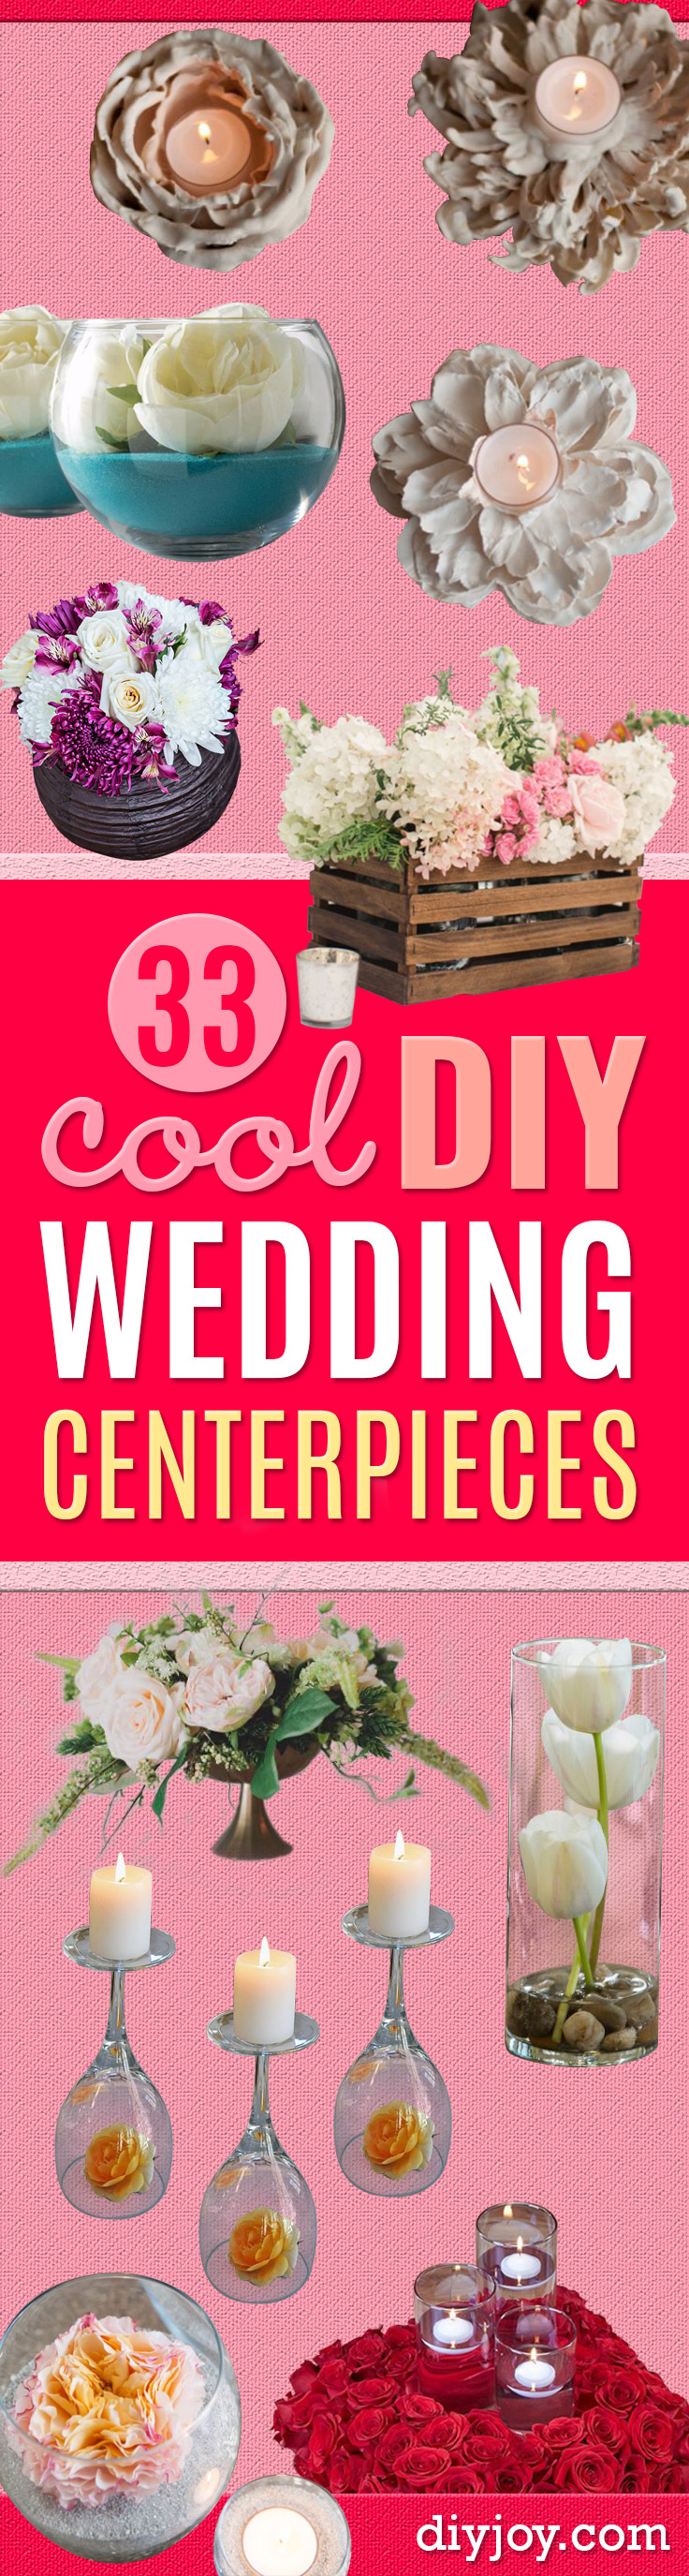 33 best diy wedding centerpieces you can make on a budget diy wedding centerpieces do it yourself ideas for brides and best centerpiece ideas for weddings junglespirit Image collections